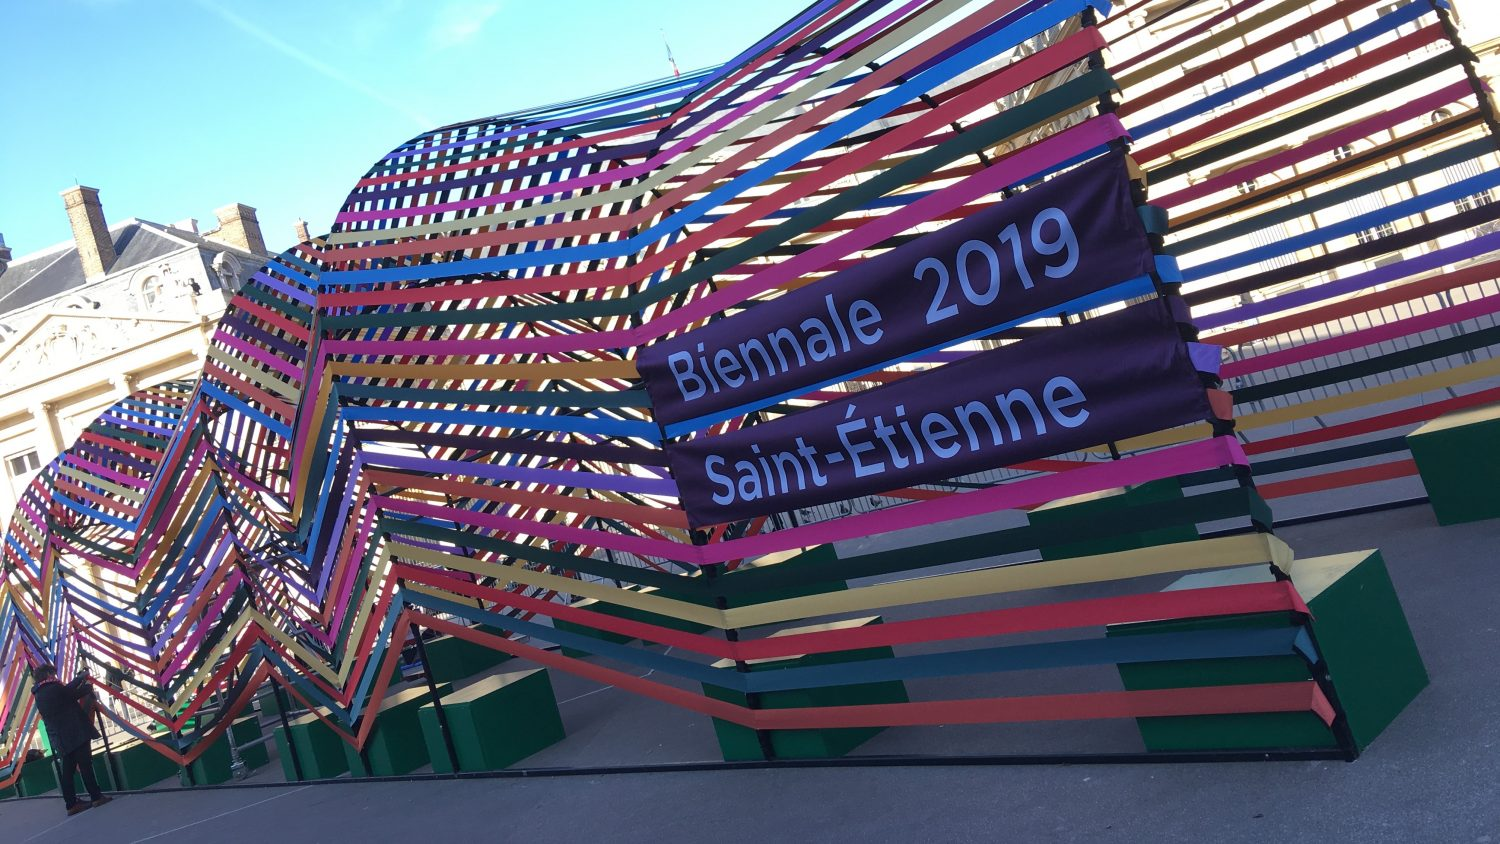 biennale internationale design saint-Étienne 2019 BIENNALE INTERNATIONALE DESIGN SAINT-ÉTIENNE 2019 EVENT GUIDE biennale 1